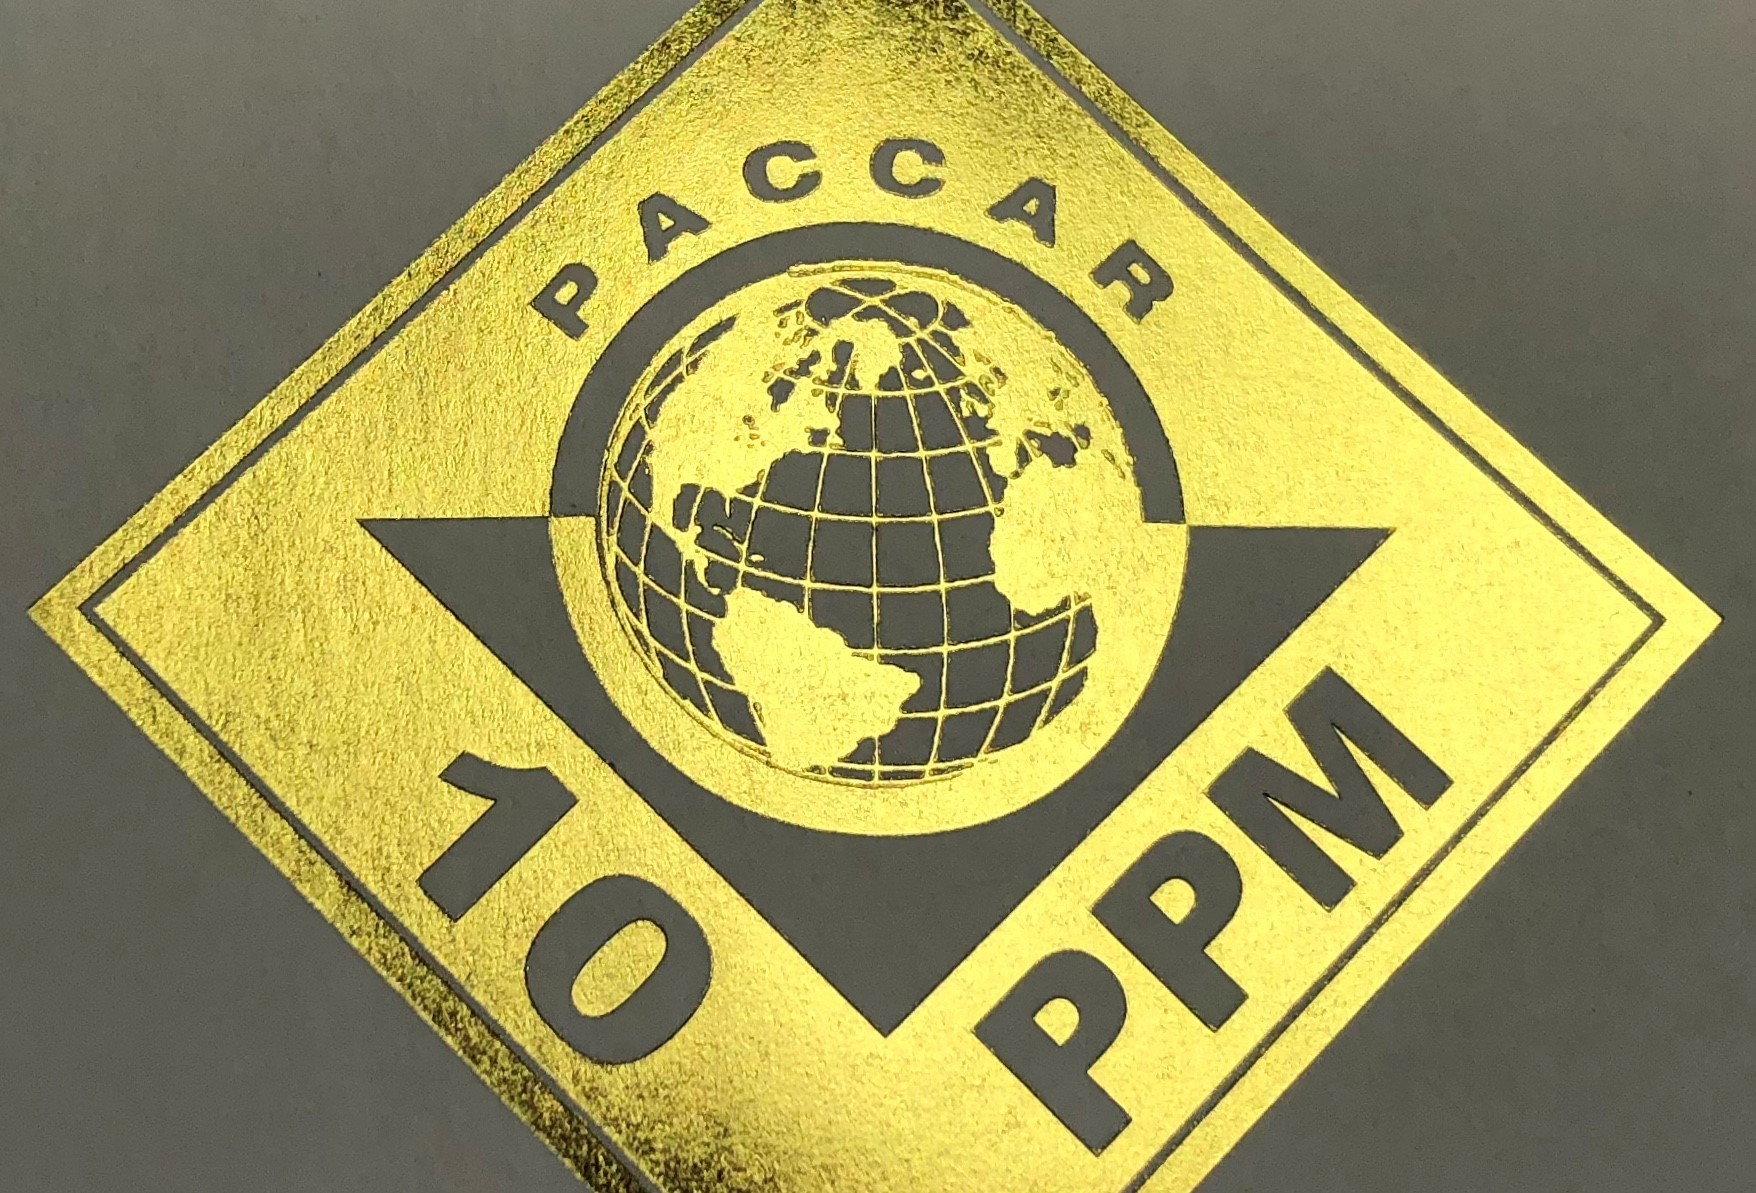 RECMAR Earns 10 PPM Award from PACCAR for 2017